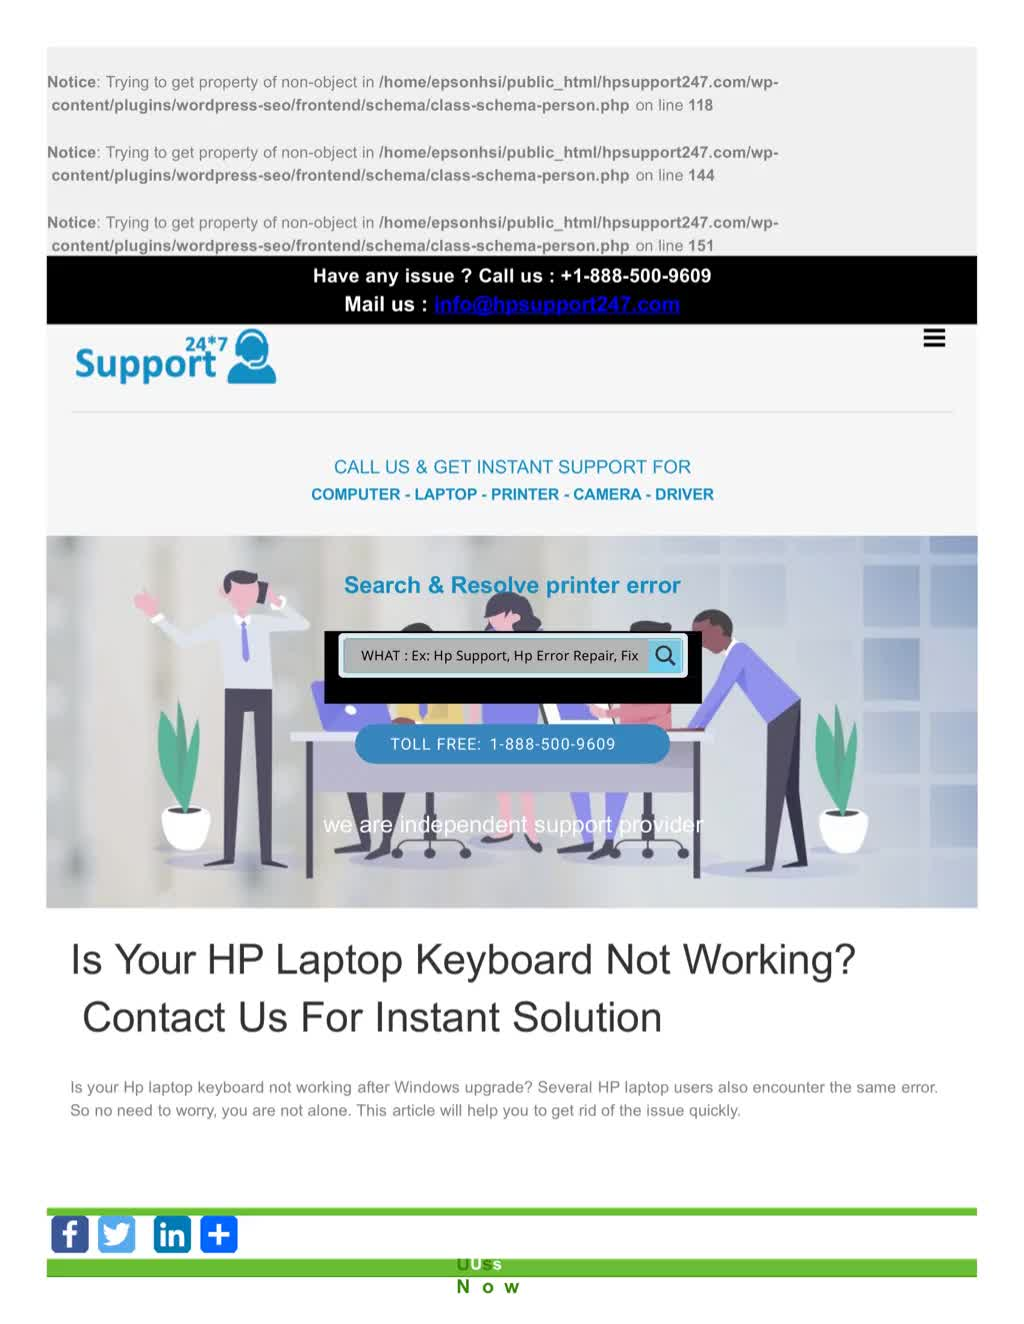 Your Hp Laptop Keyboard Not Working For Instant Solution Gif By Hpsupport247 Gfycat